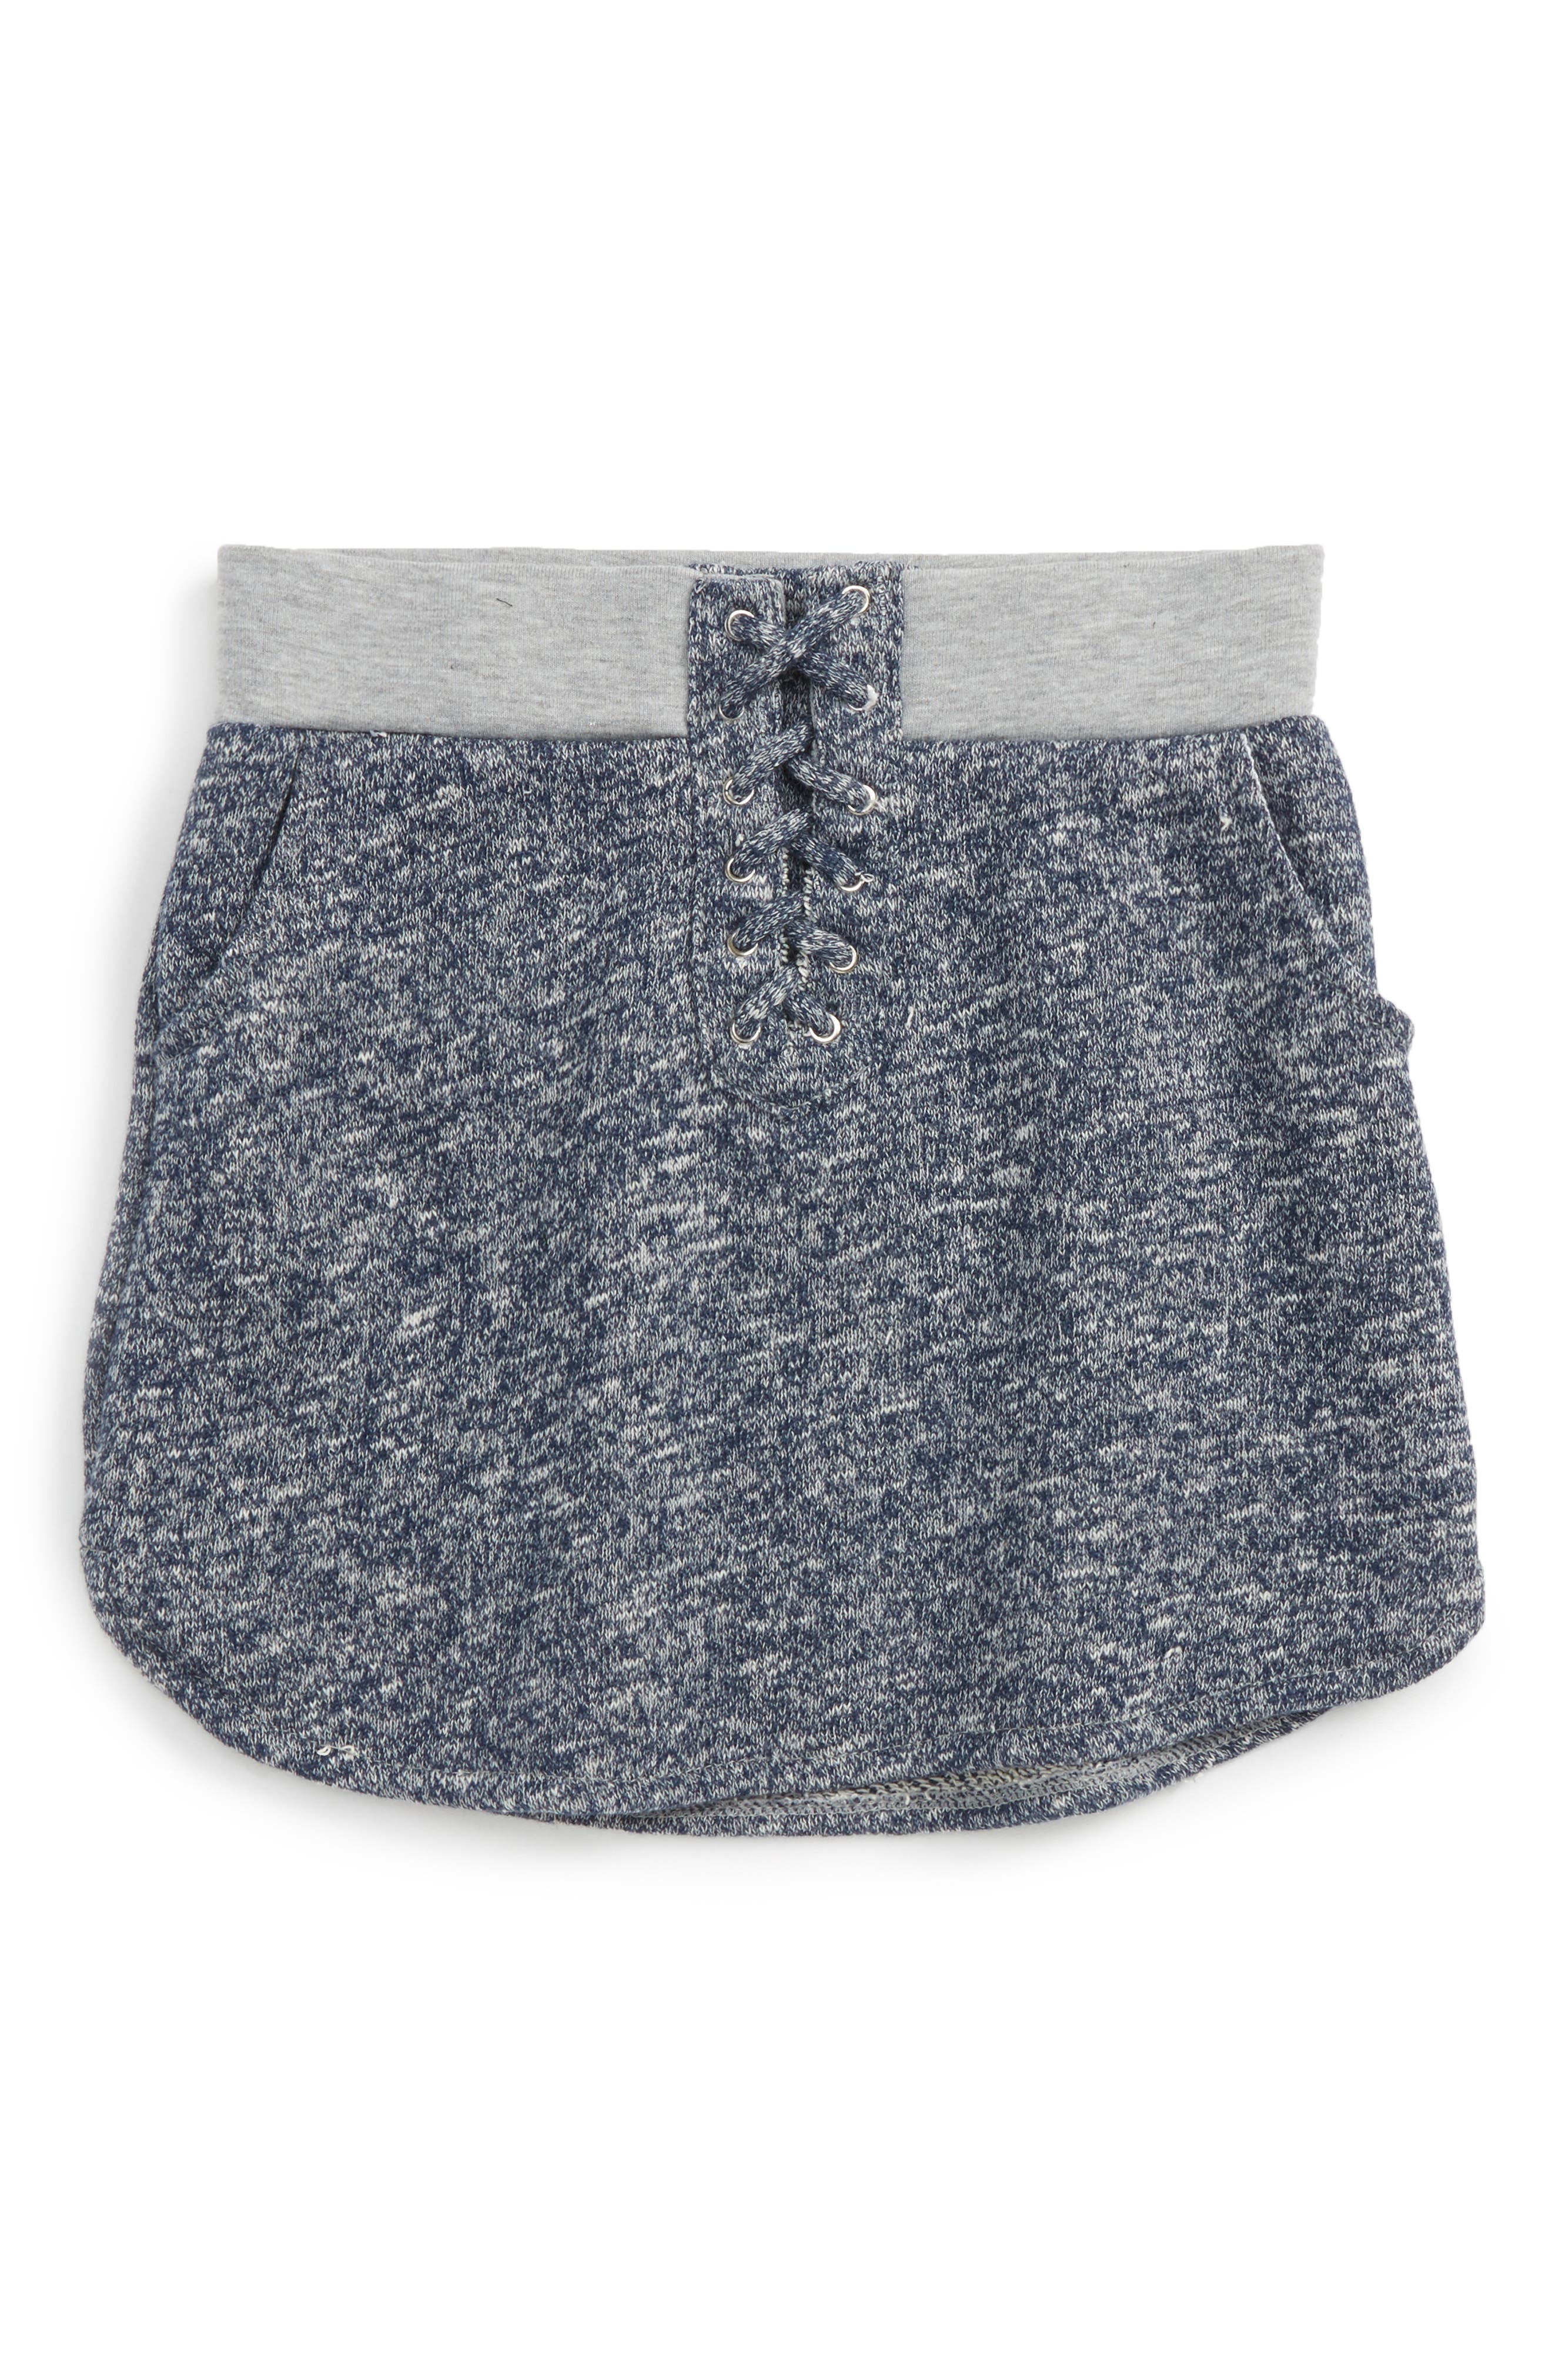 Main Image - Flowers by Zoe Lace-Up Skirt (Little Girls & Big Girls)